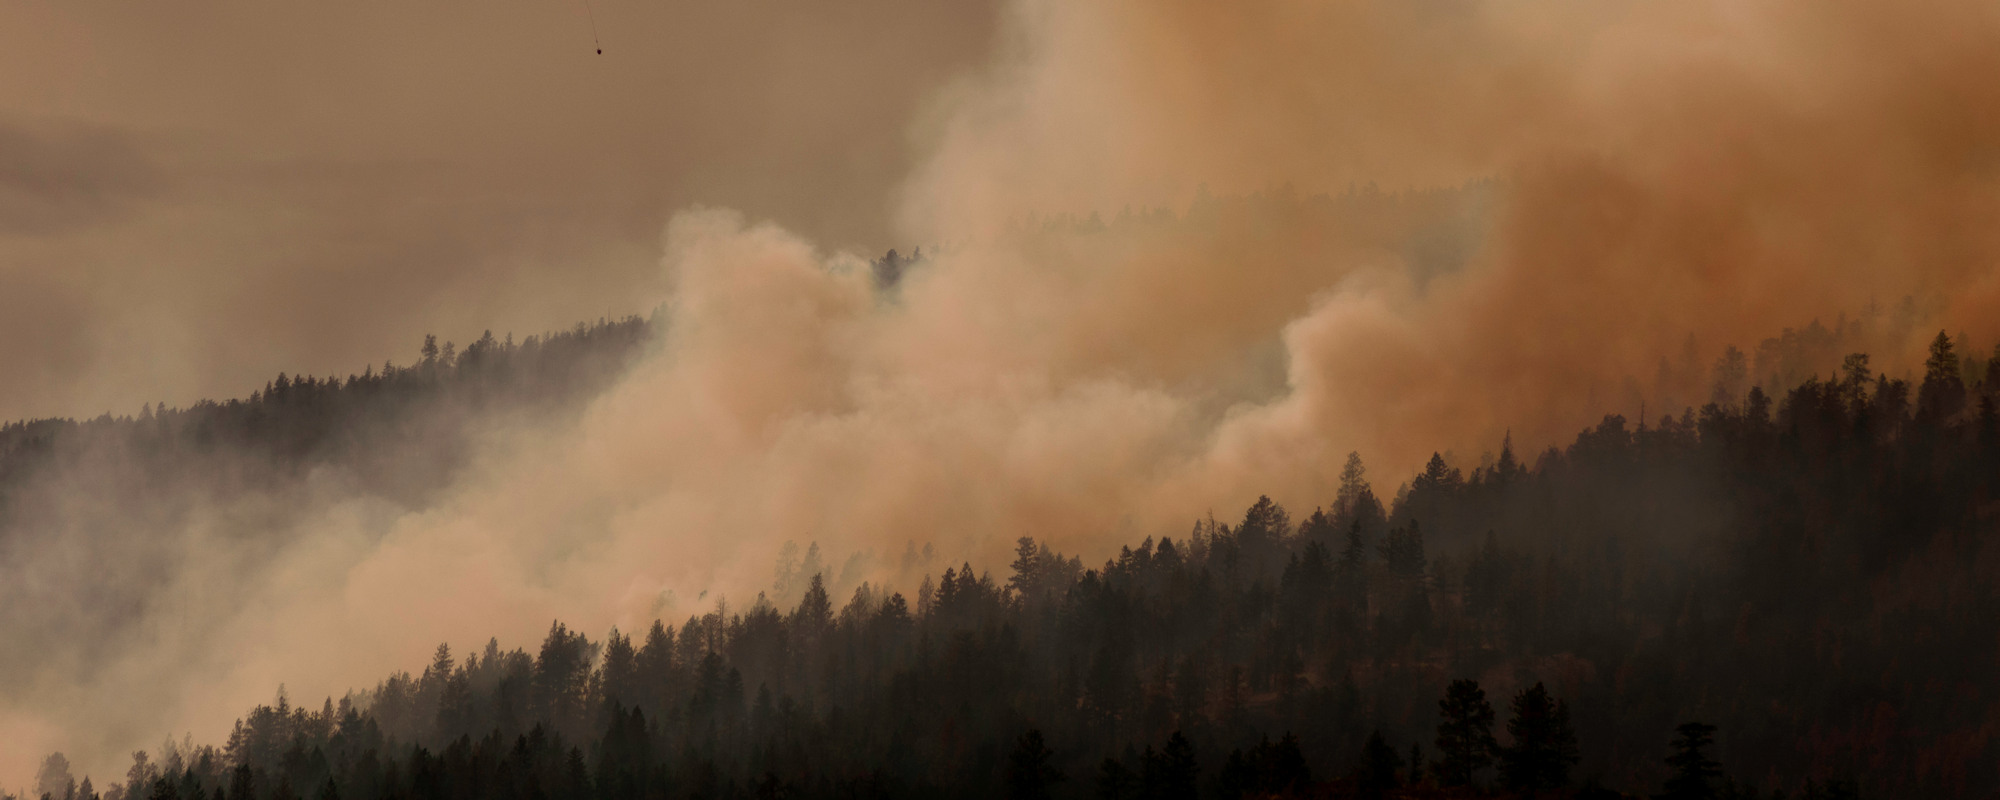 Smoke and wildfire behind a tree line in the distance